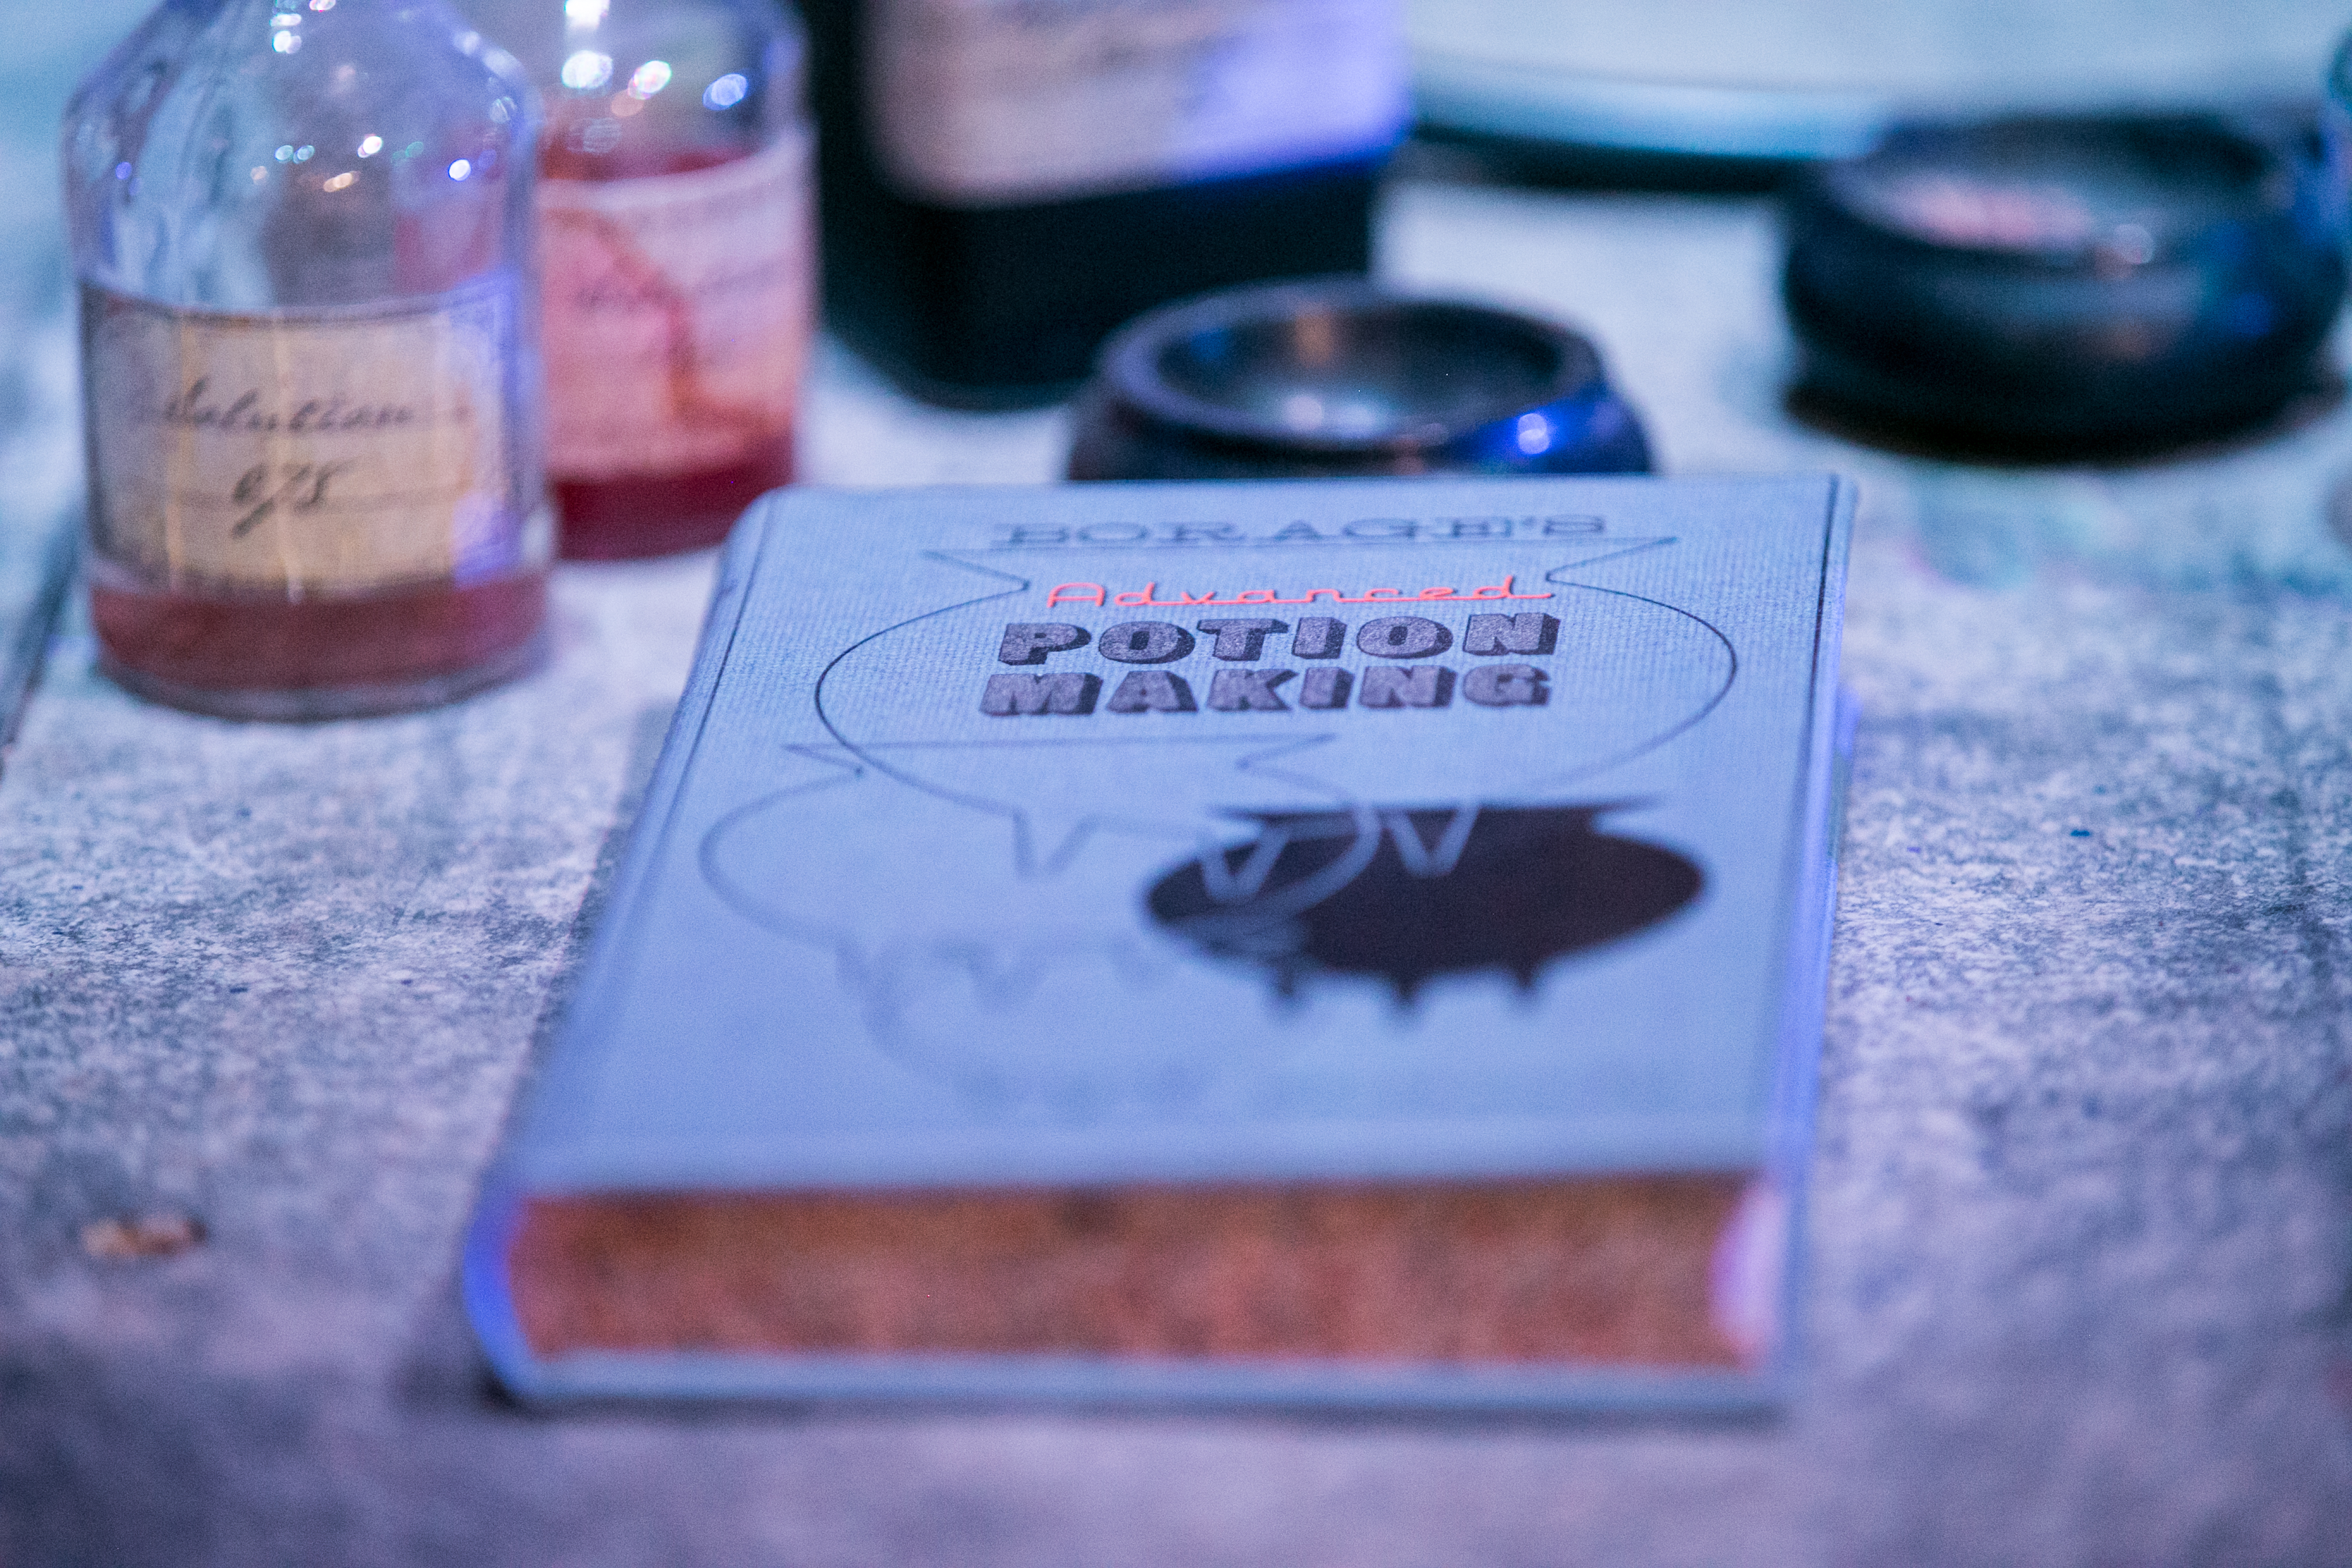 harry-potter-studio-tour-potions-detail-book